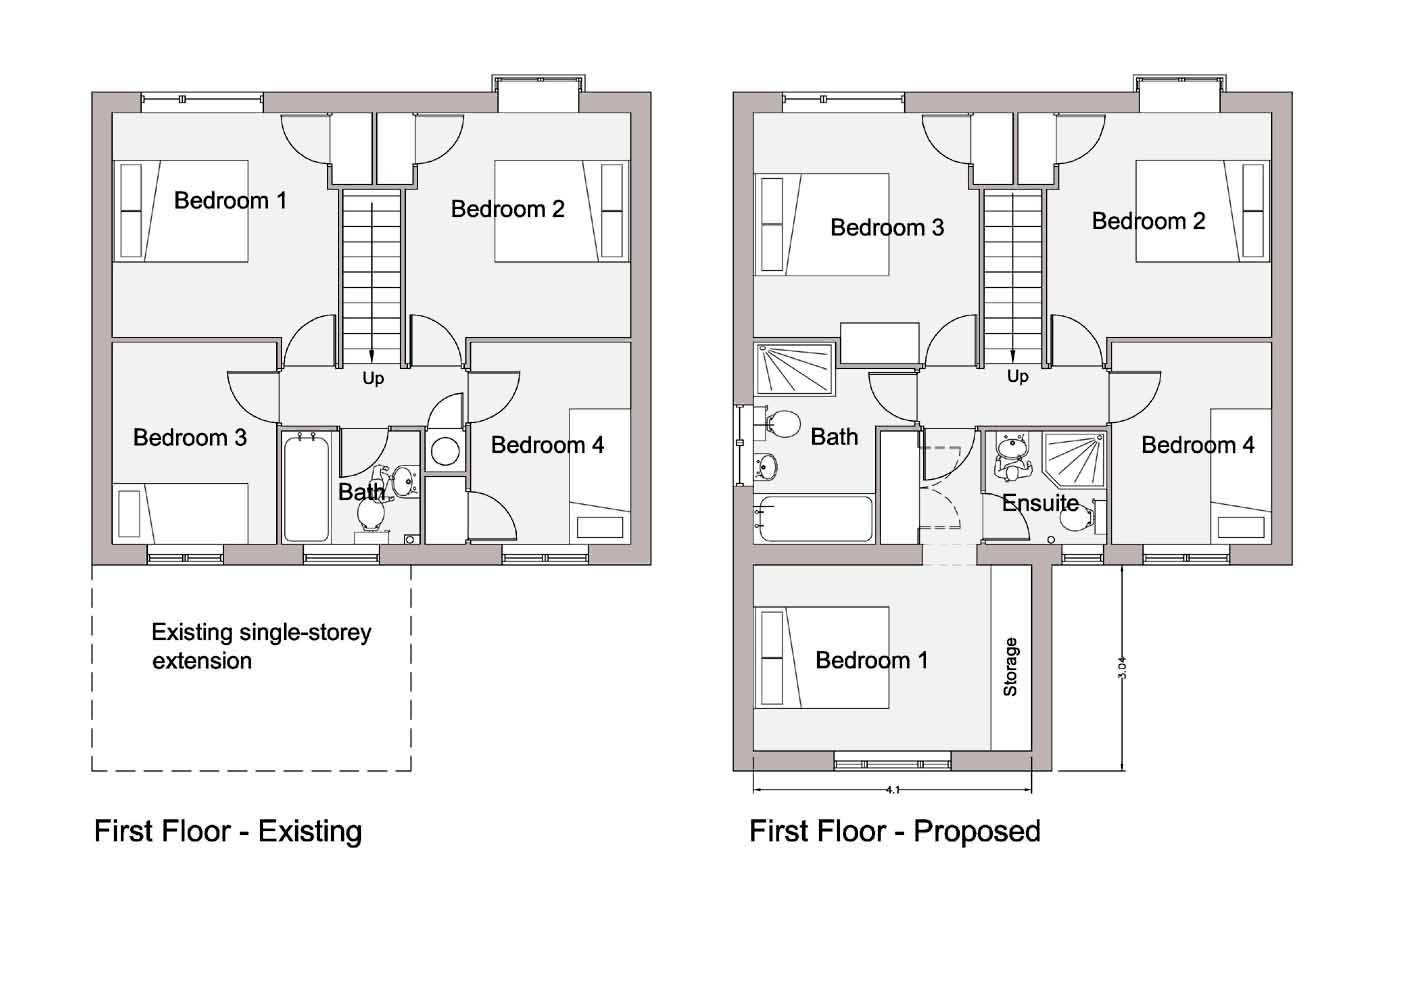 House Blueprint Drawing,Blueprint.Home Plans Ideas Picture